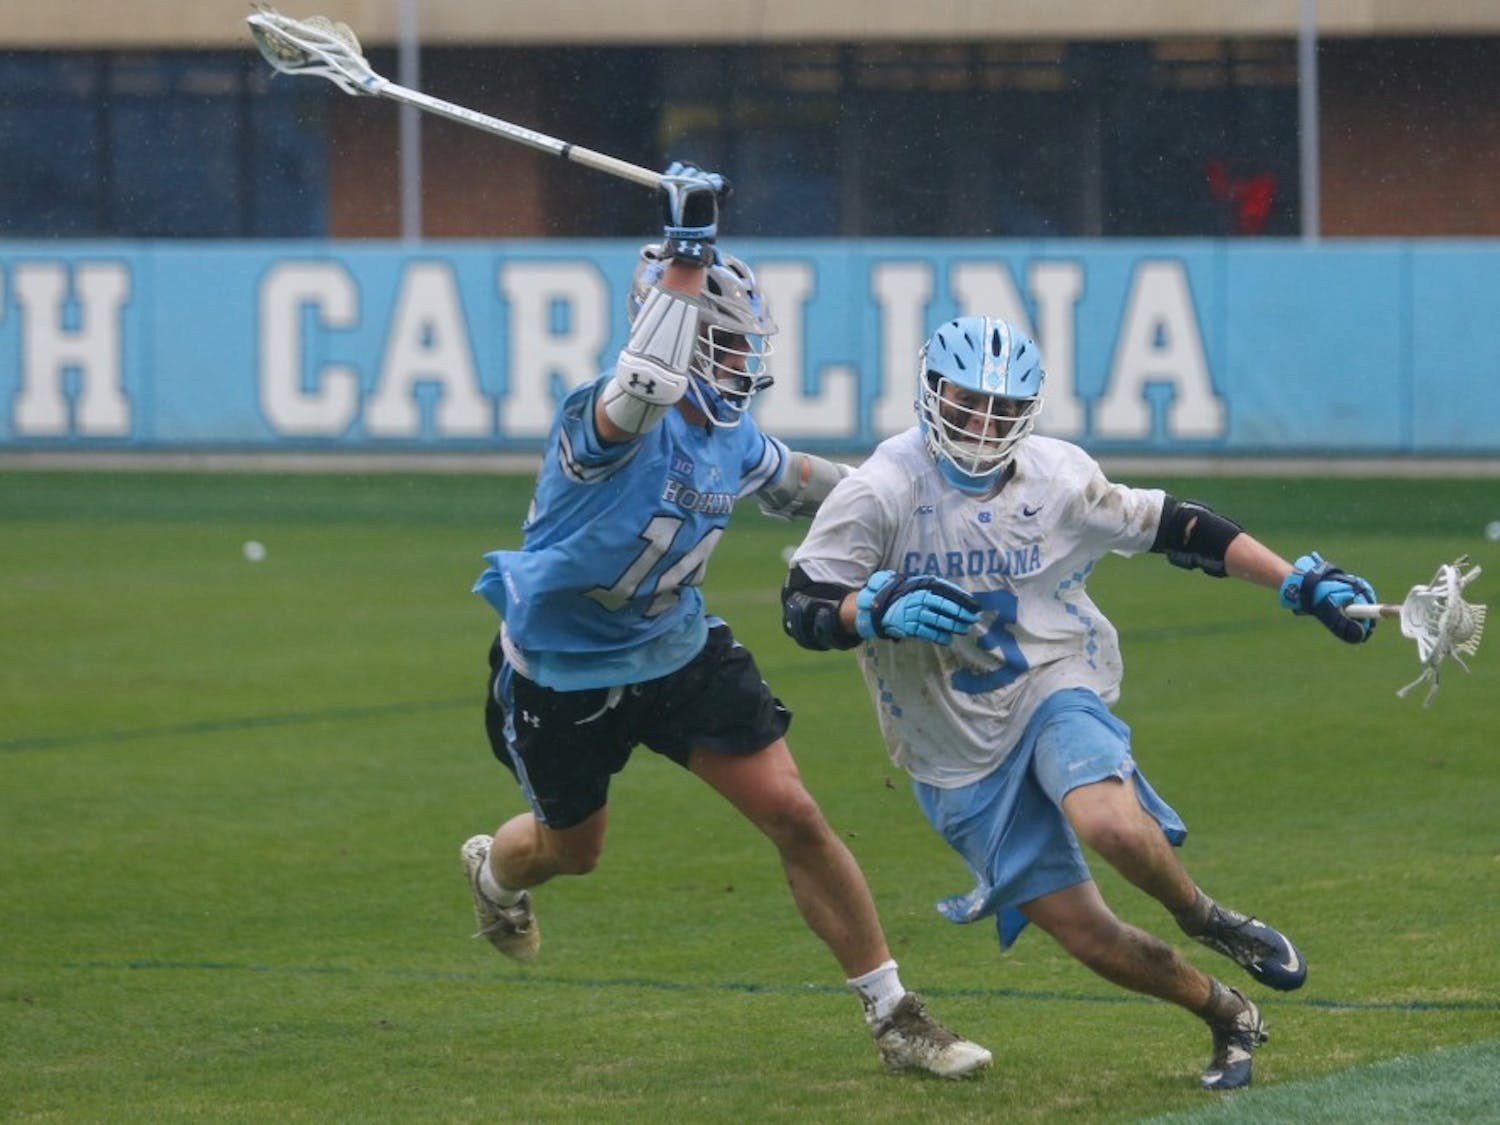 Midfielder William Perry (3) runs down the field during the game against Johns Hopkins in Kenan Memorial Stadium on Saturday, Feb. 23, 2019. UNC lost 10-11.